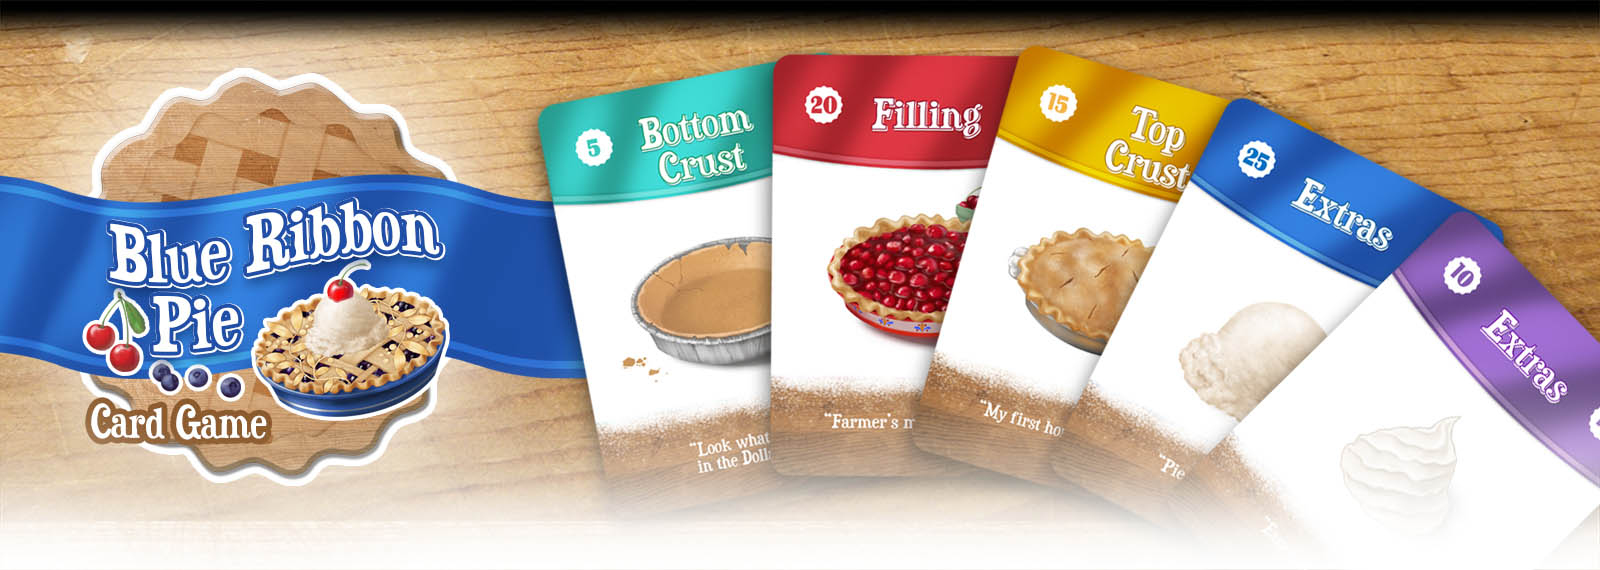 Blue Ribbon Pie card game banner